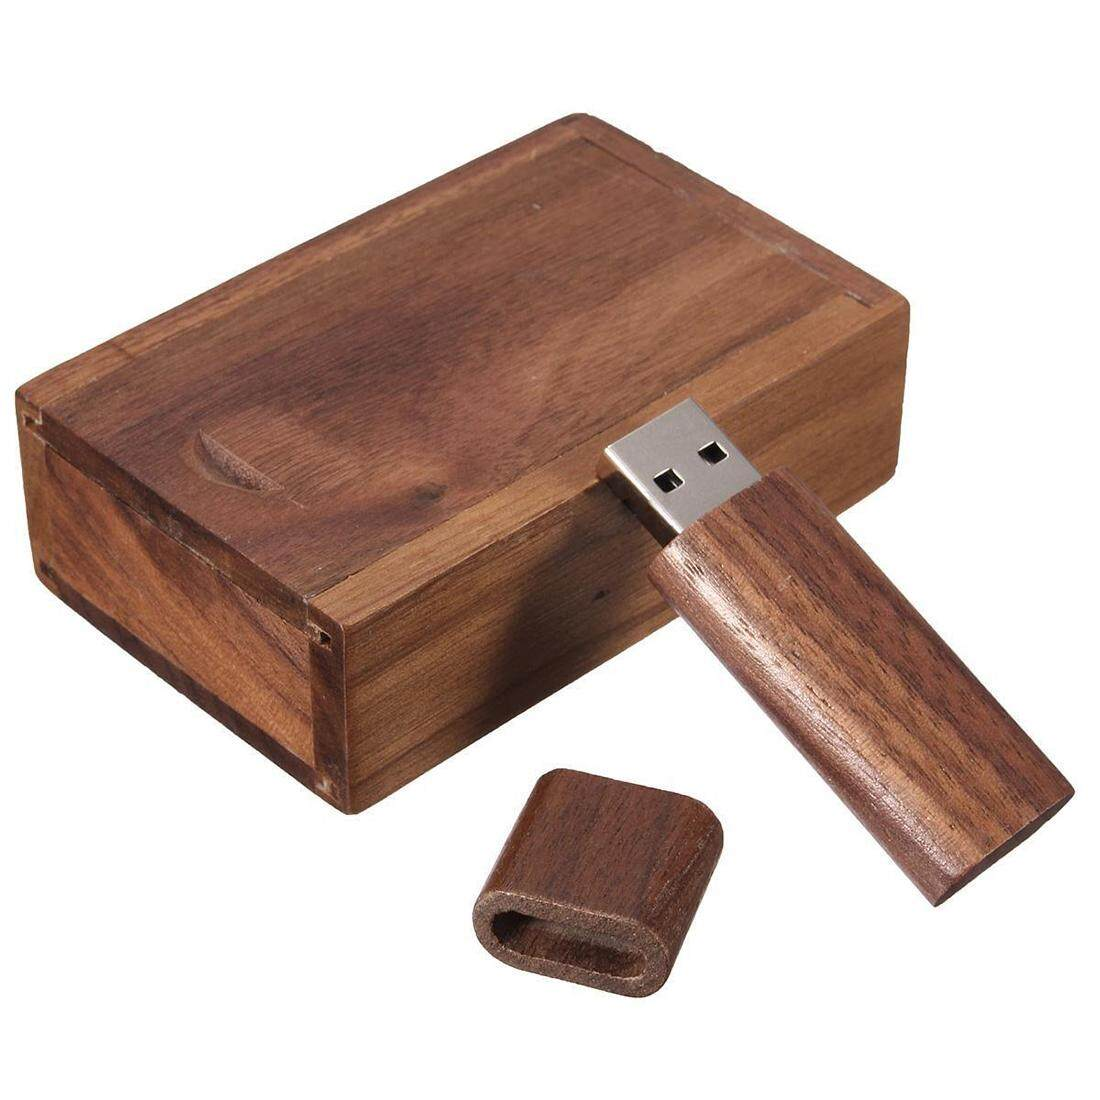 4-32G GB USB 2.0 Flash Pen Drive Storage Wooden Memory Stick U Disk with Wood Case Storage Capacity:8G Malaysia